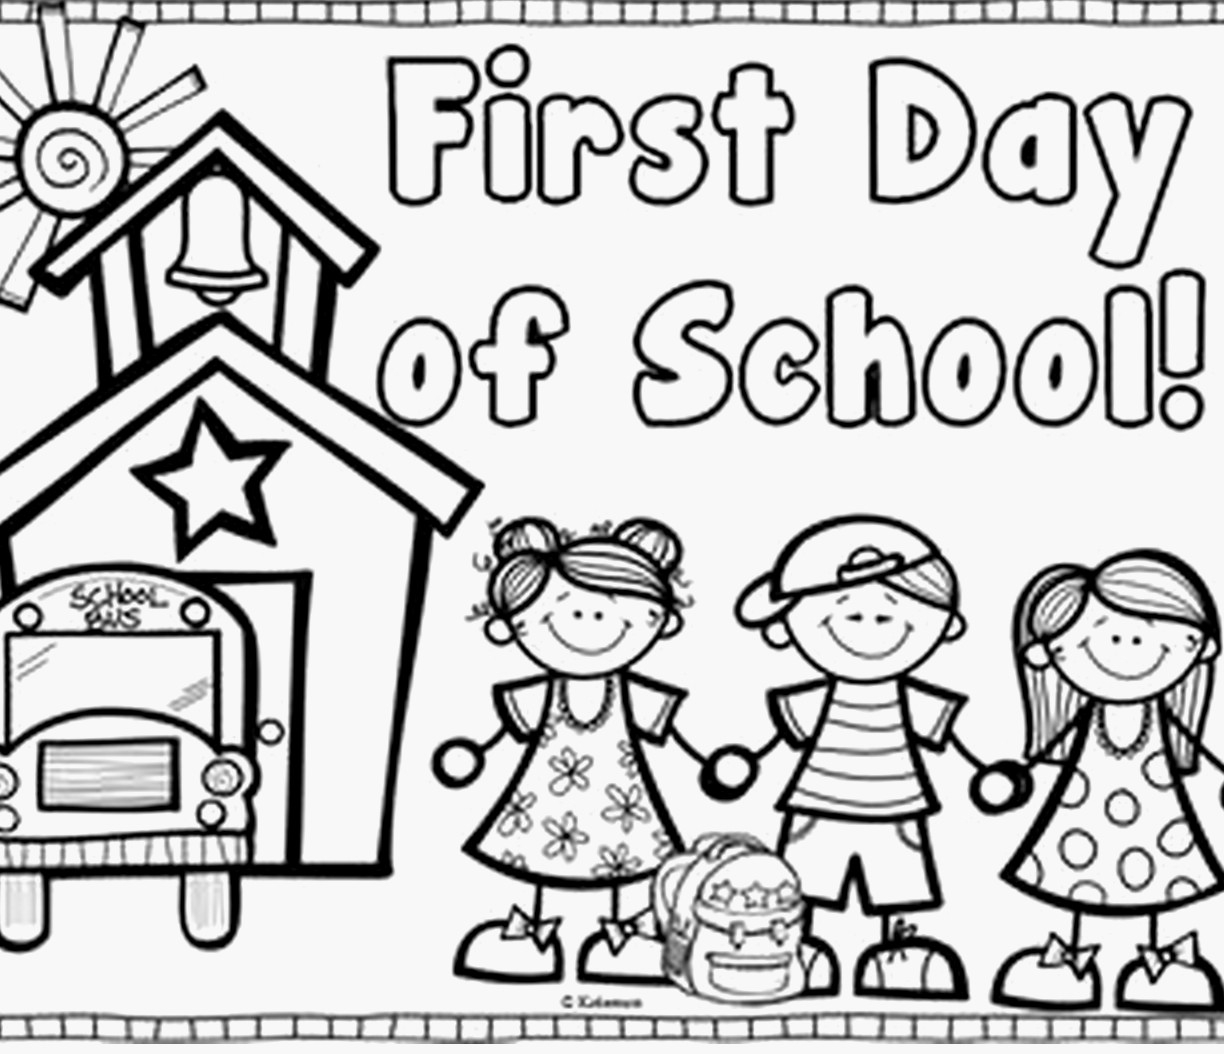 first day of school coloring pages Download-Geronimo Stilton Coloring Pages First Day Kindergarten Coloring Page 9-k